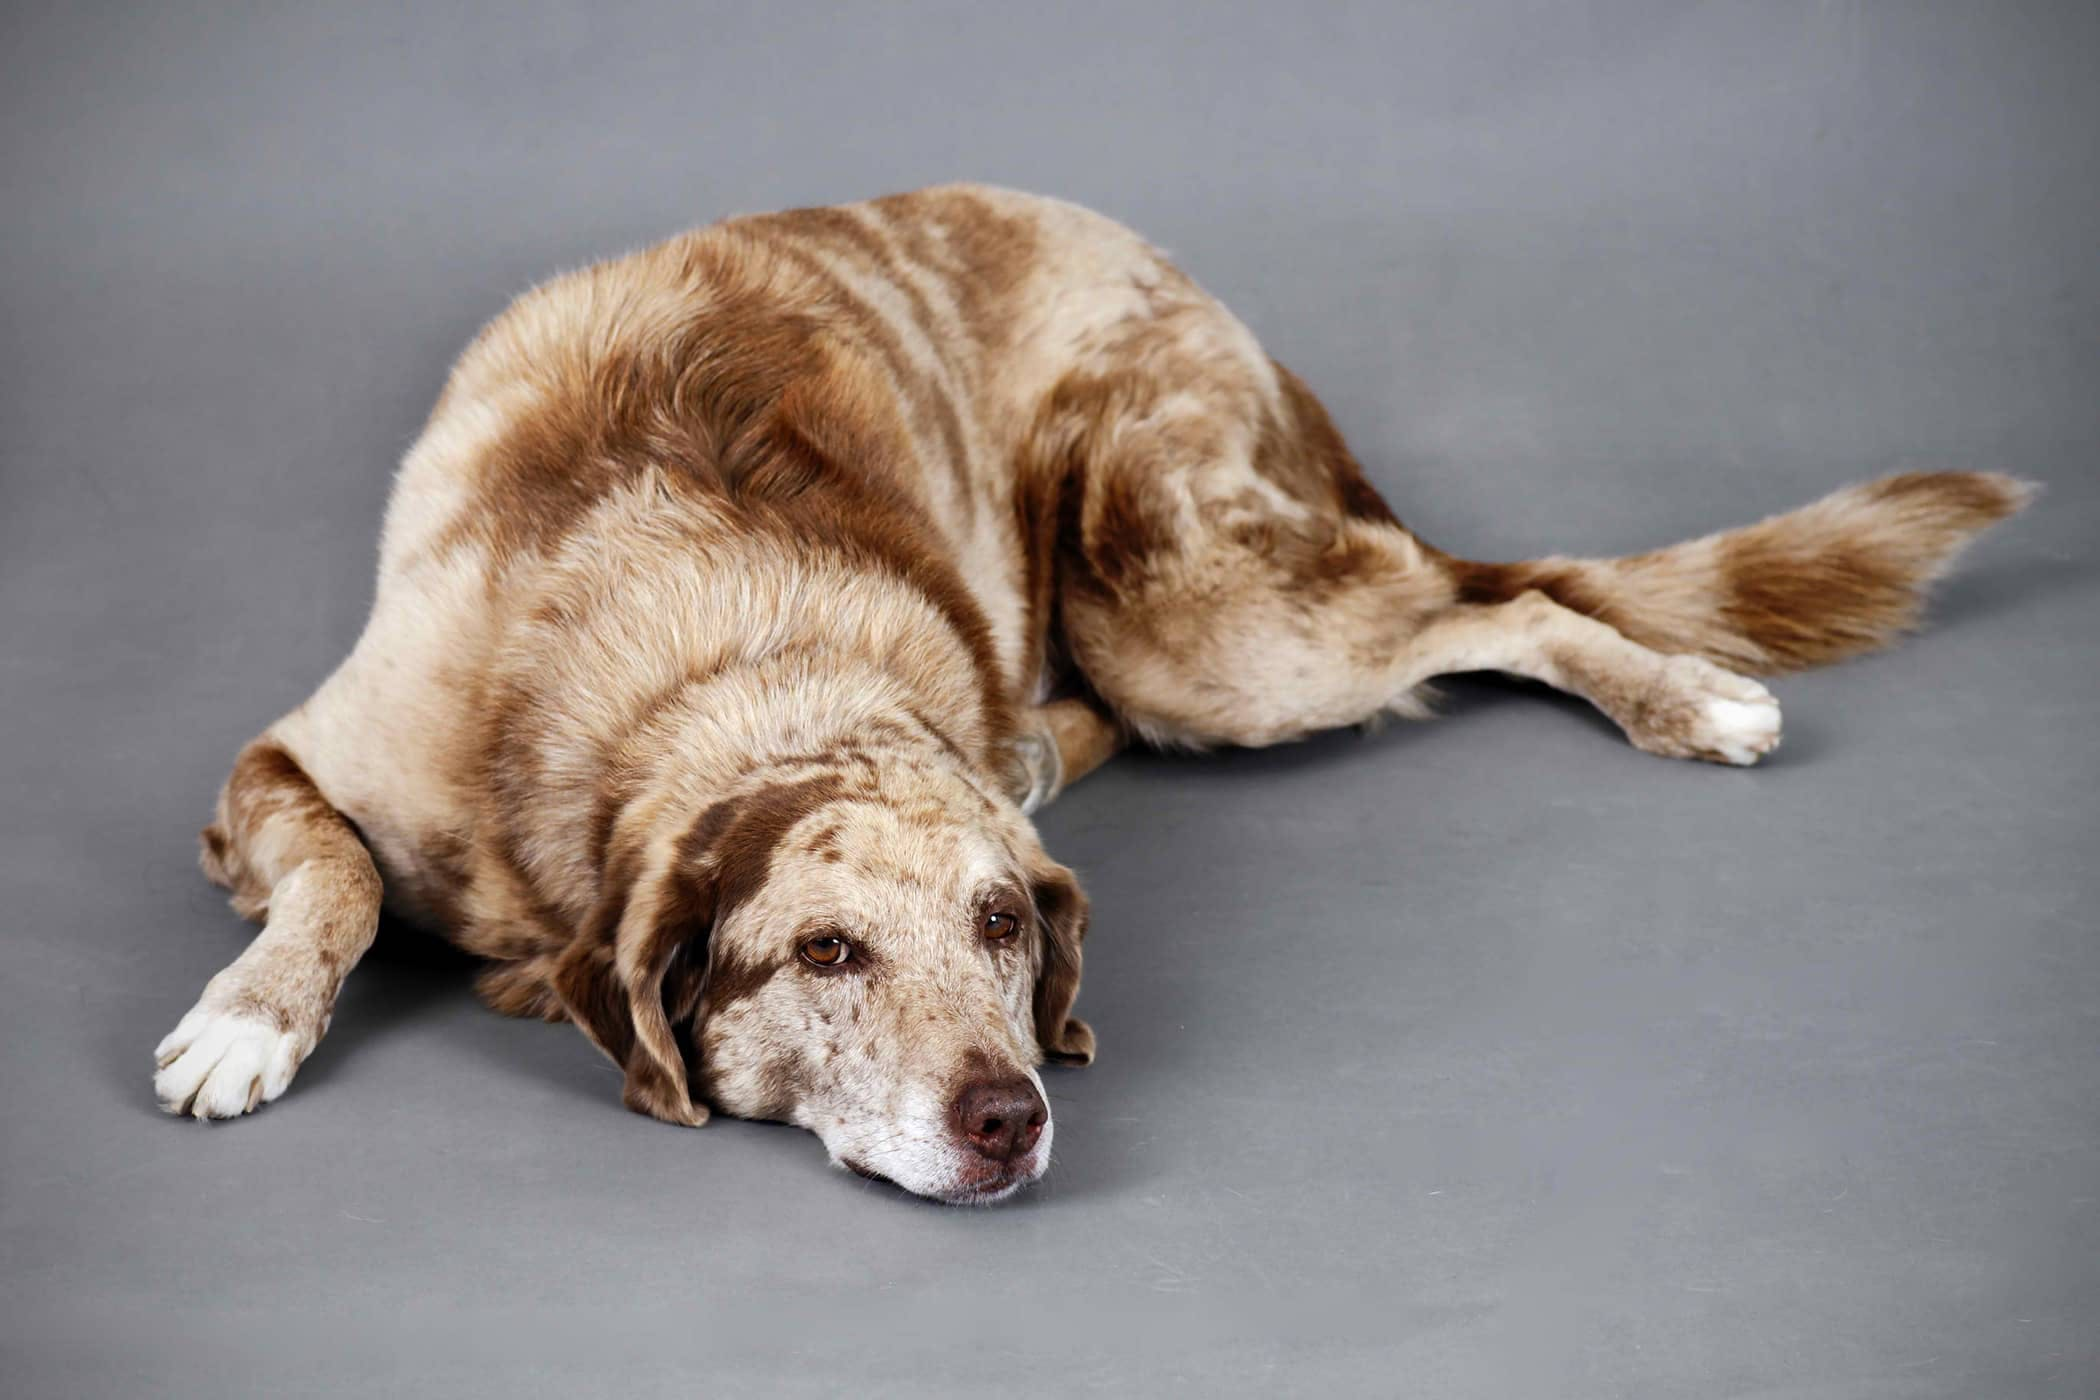 Natural Seizure Remedies in Dogs - Procedure, Efficacy